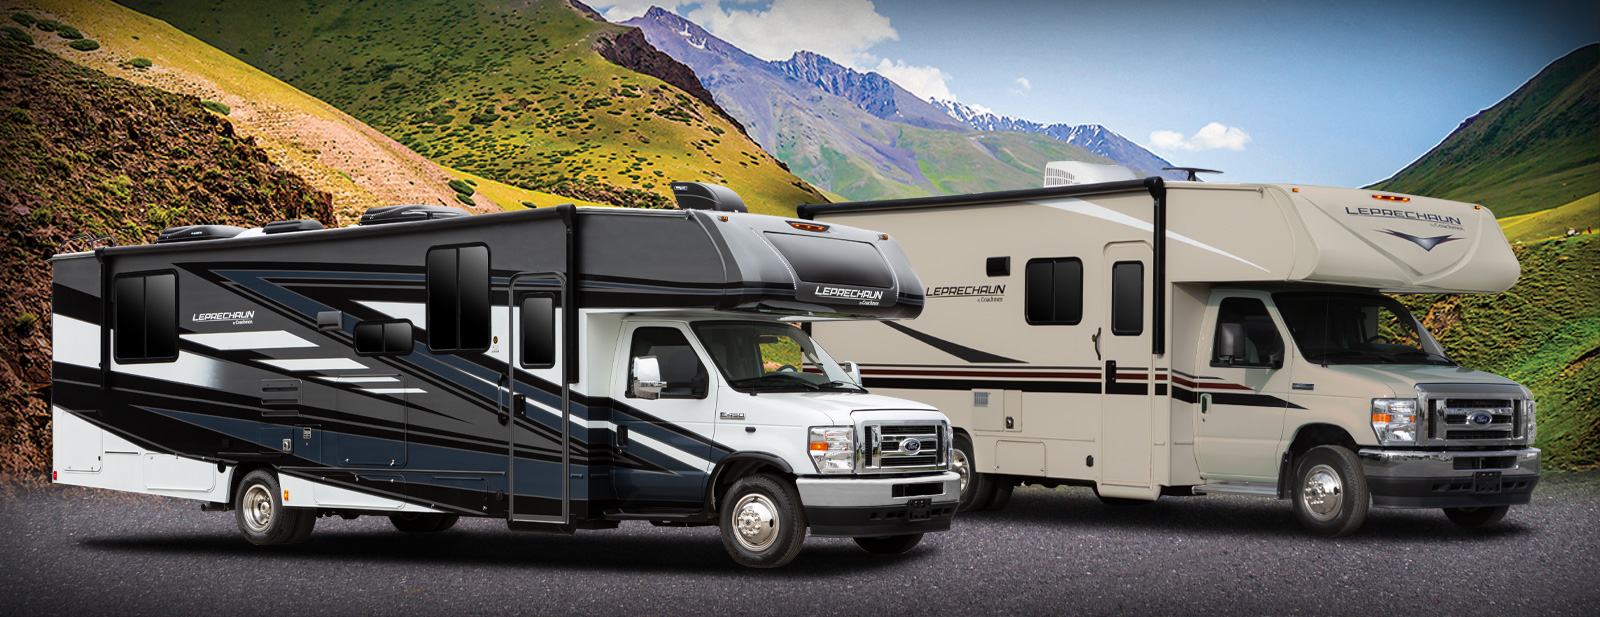 Leprechaun Coachmen RV | Travel Trailers, Fifth Wheels, Motorhomes on